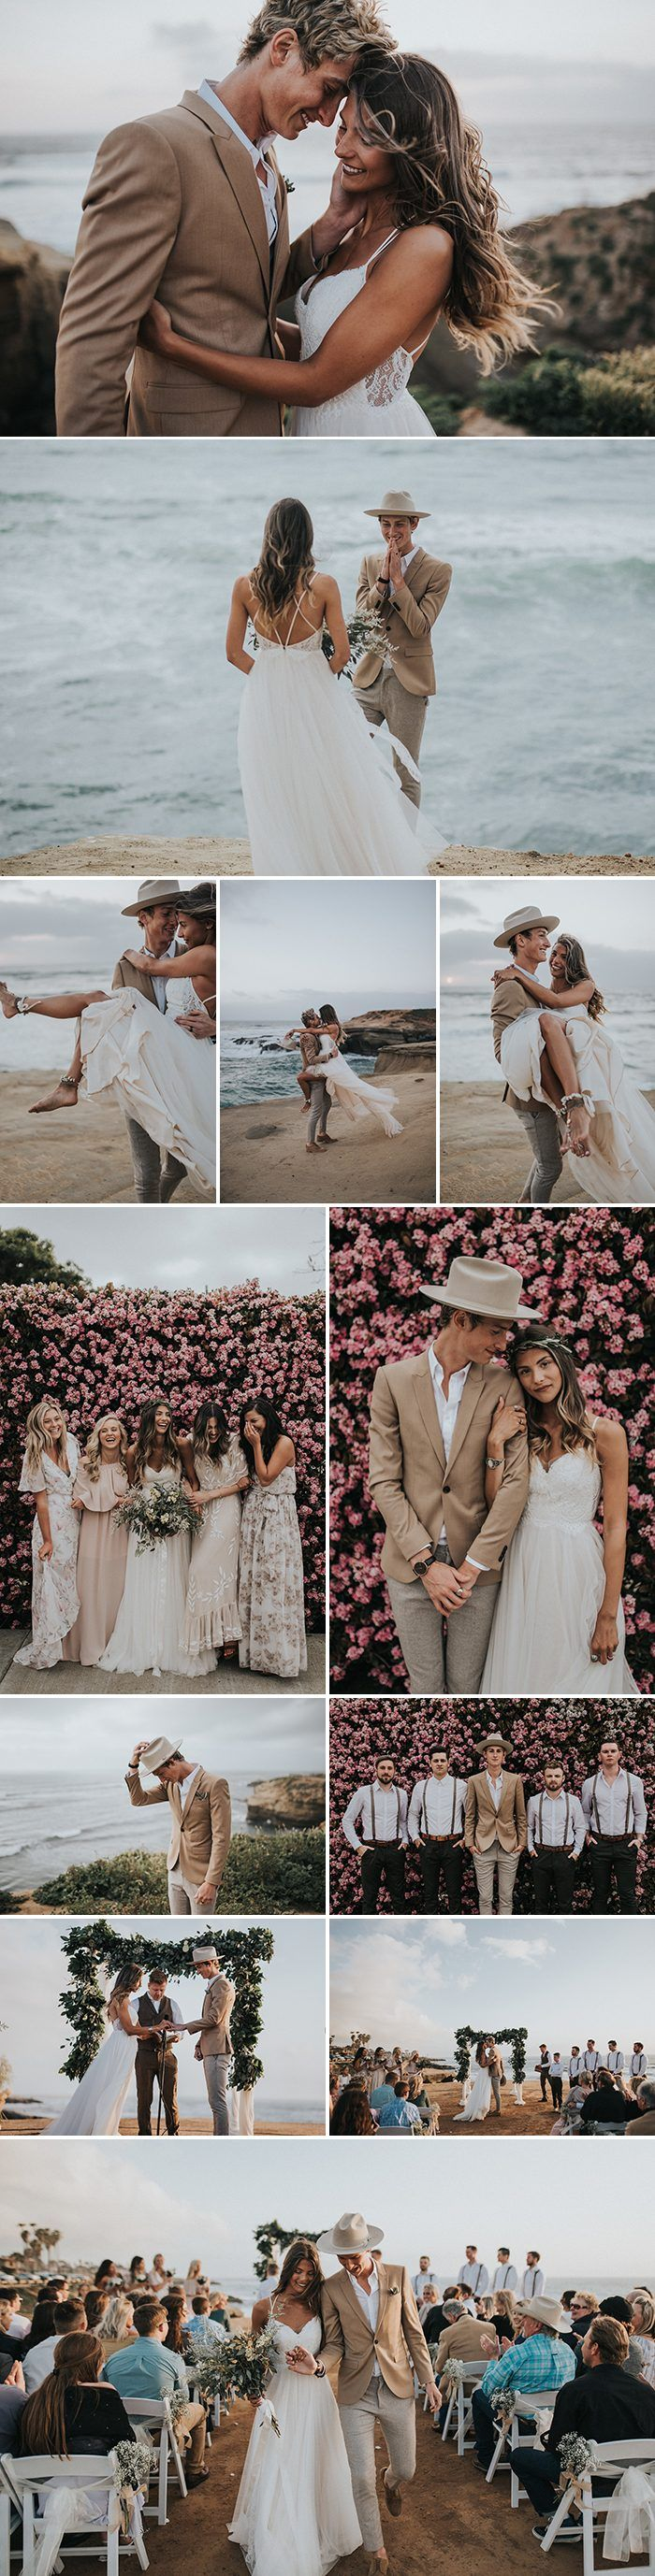 With the end of the year just around the corner, we've rounded up our favorite weddings of 2017! Check out the inspiring stories + style right this way.